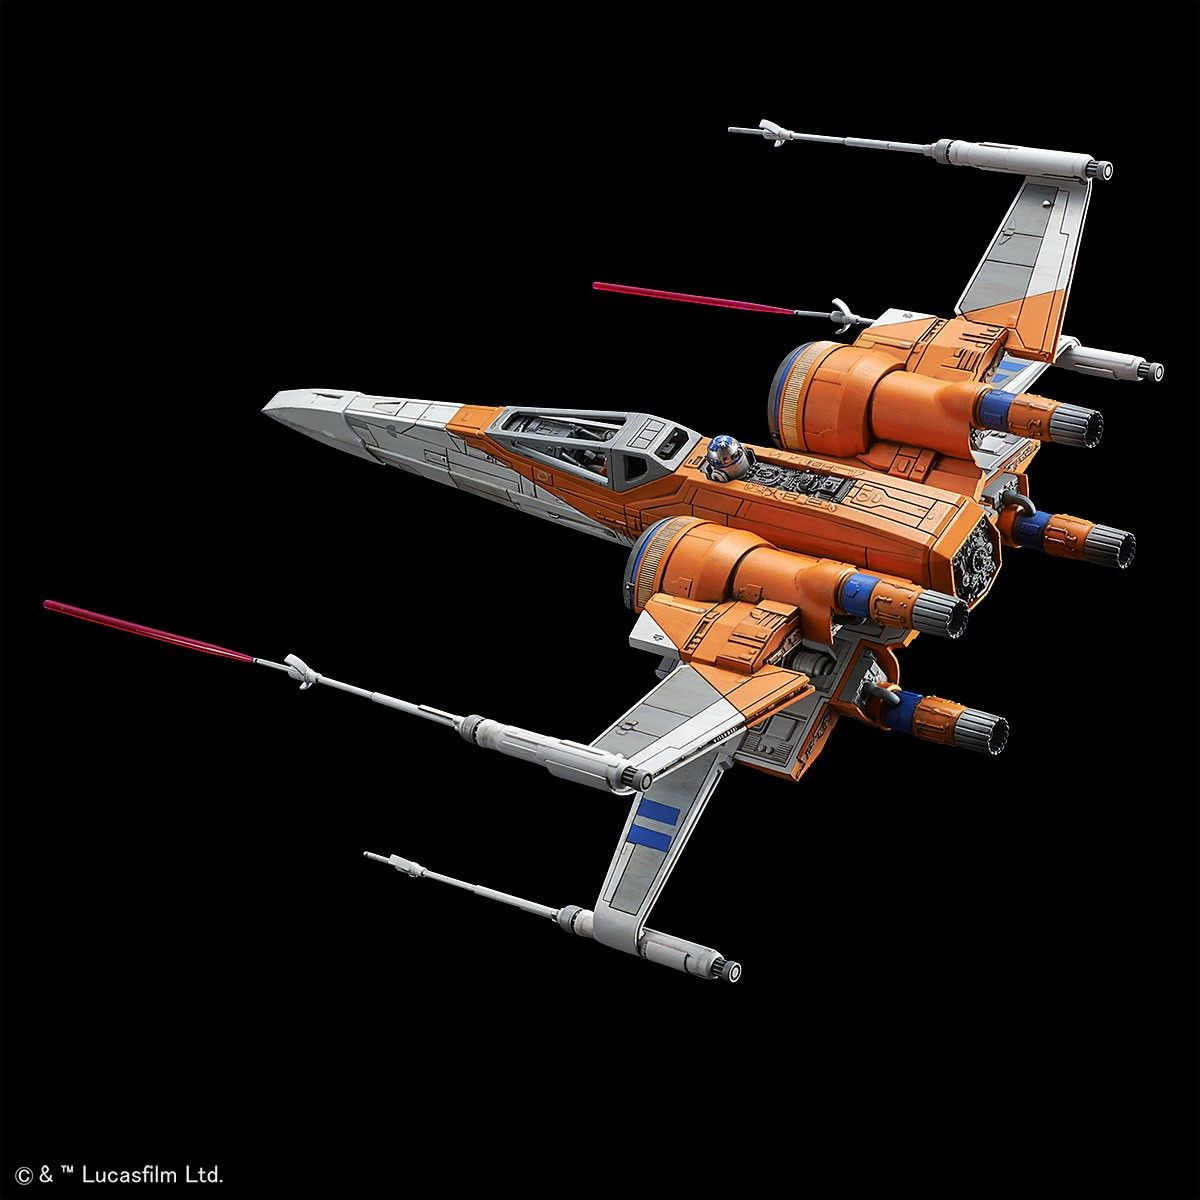 Bandai 1 72 Scale Plastic Model Kit Poe S X Wing Starfighter Star Wars The Rise Of Skywalker Ver X Wing Starfighter Plastic Model Kits Starfighter